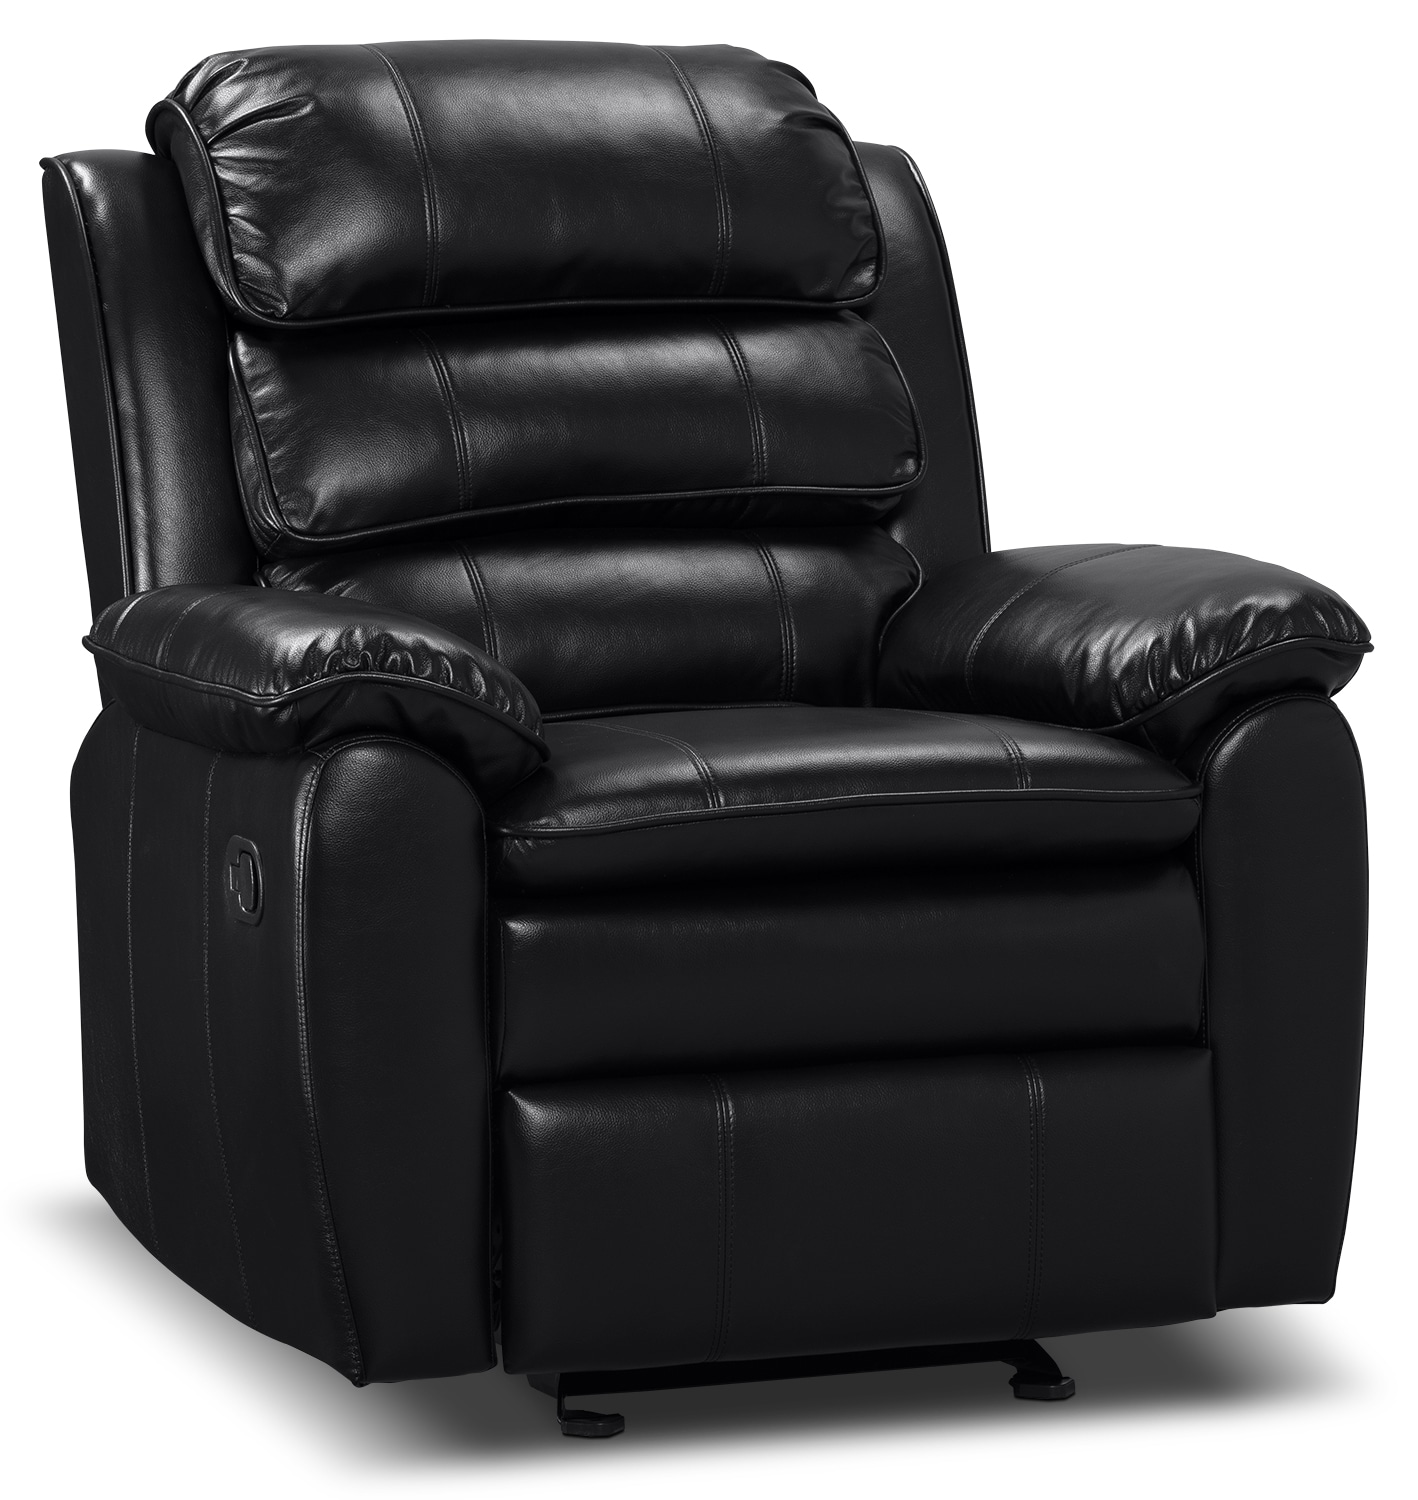 leather glider chair adam leather look fabric reclining glider chair black 16636 | 472087